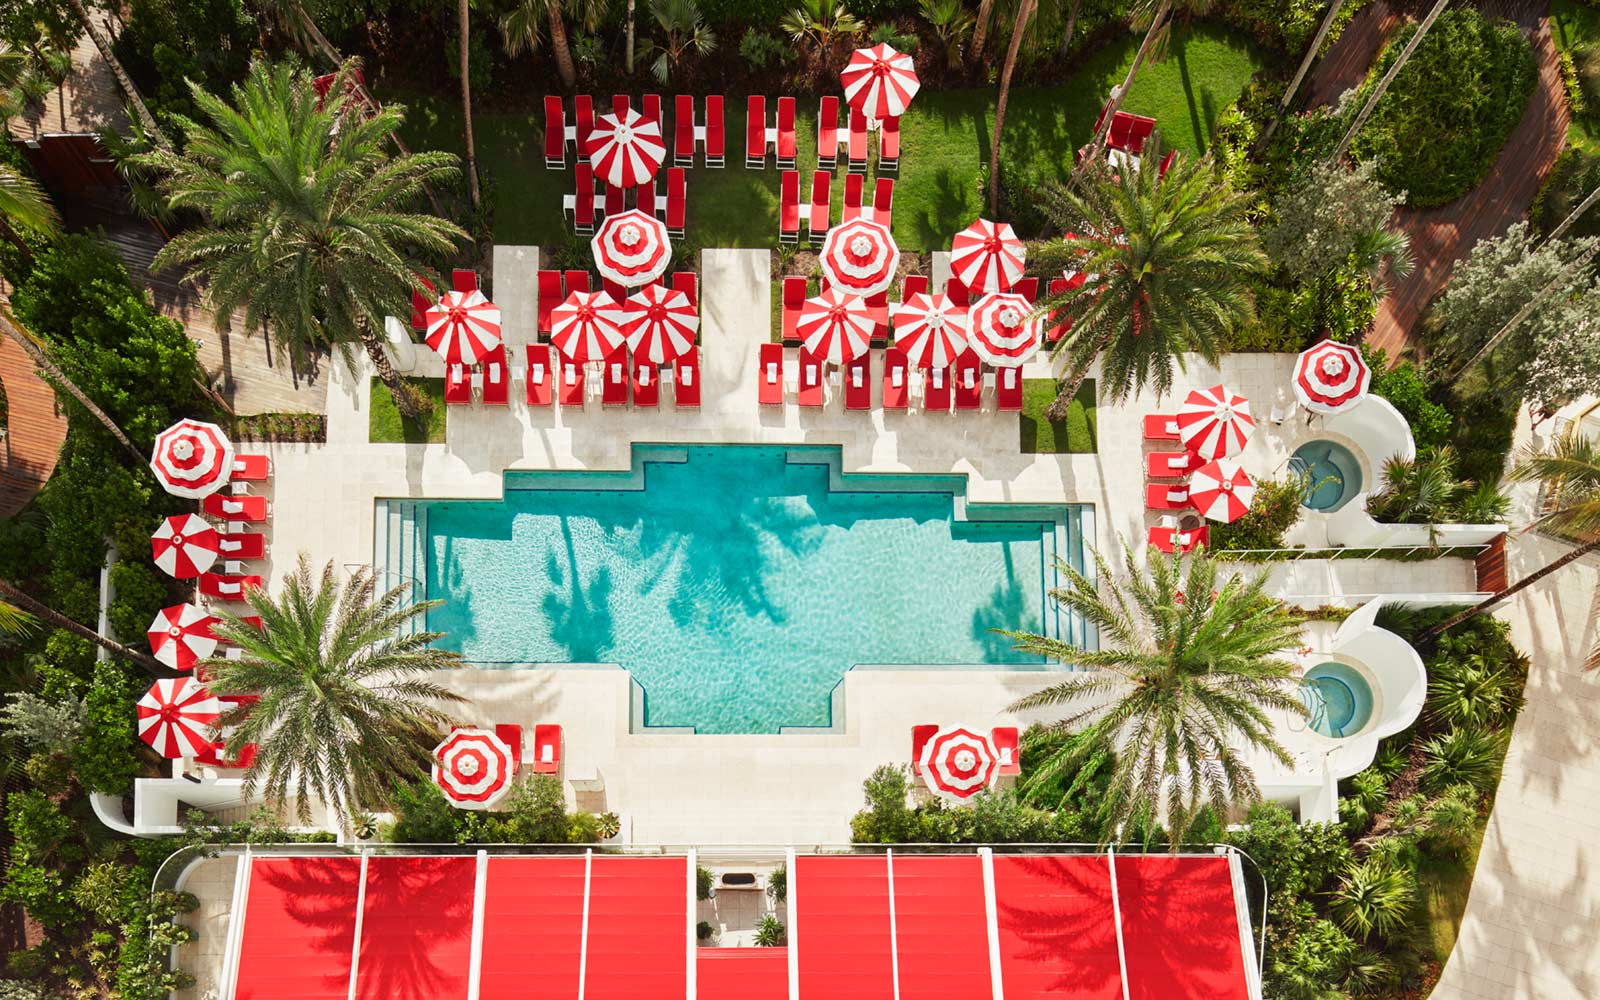 The 2018 World's Best Hotels in Greater Miami Beach